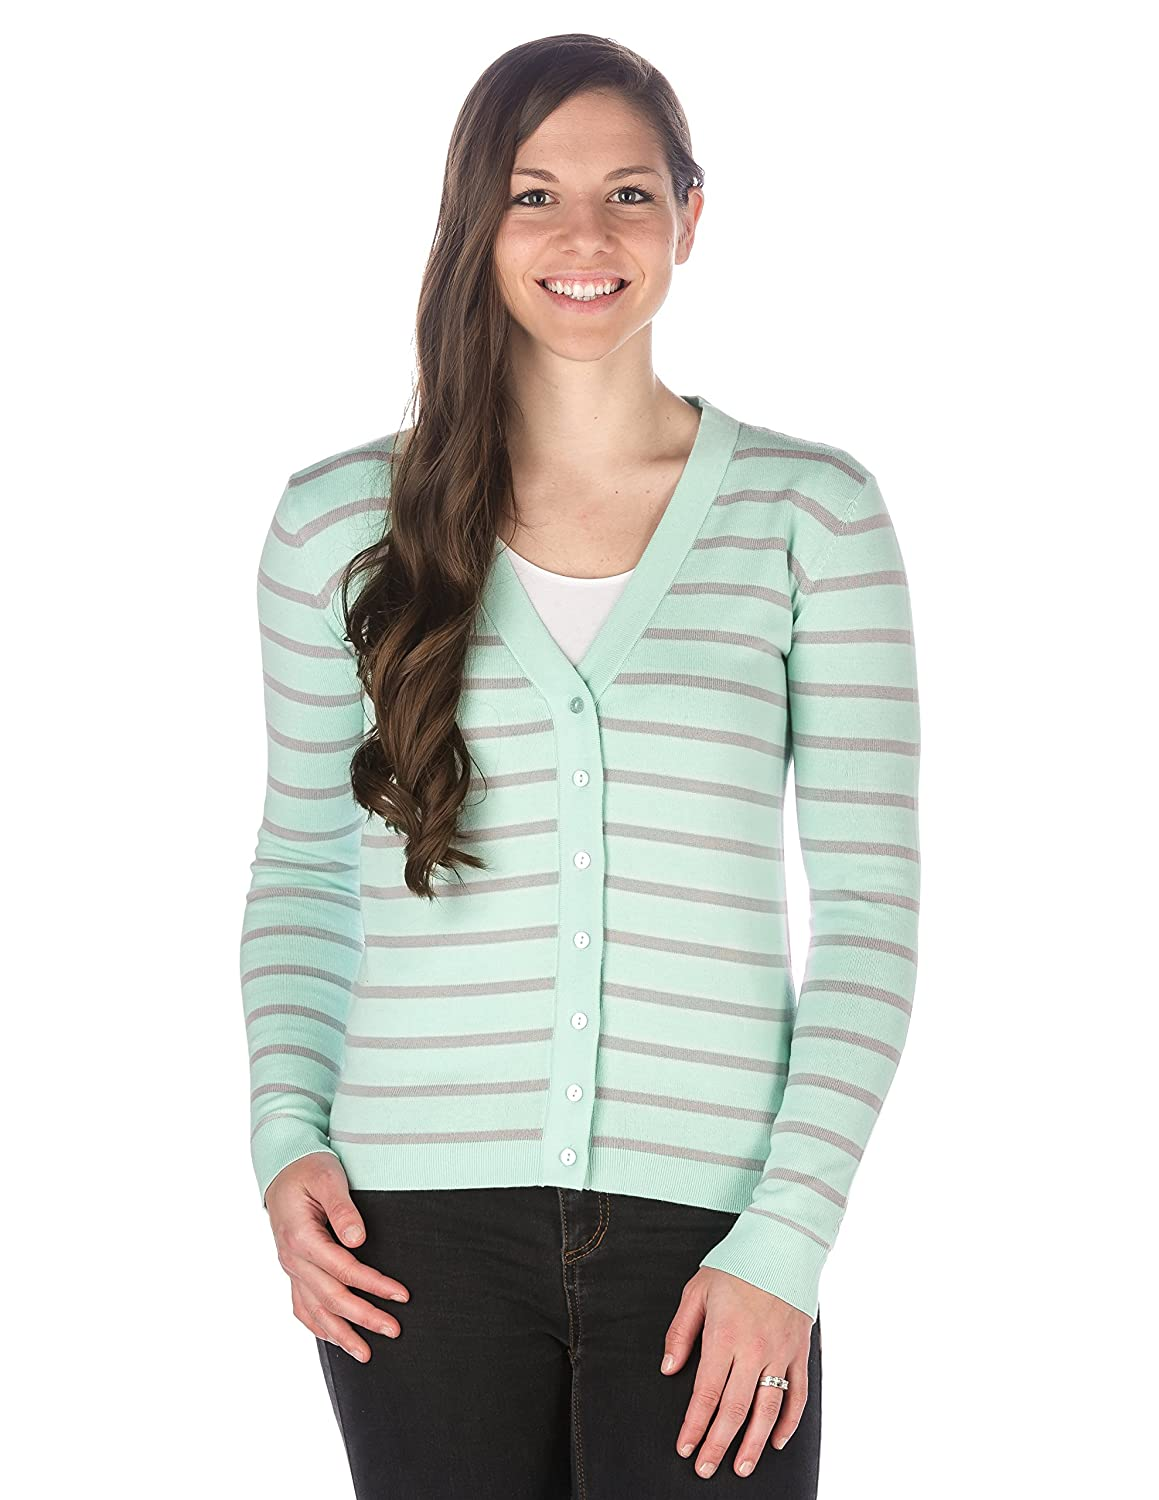 Noble Mount Womens 100% Cotton Cardigan Sweater at Amazon Women's ...